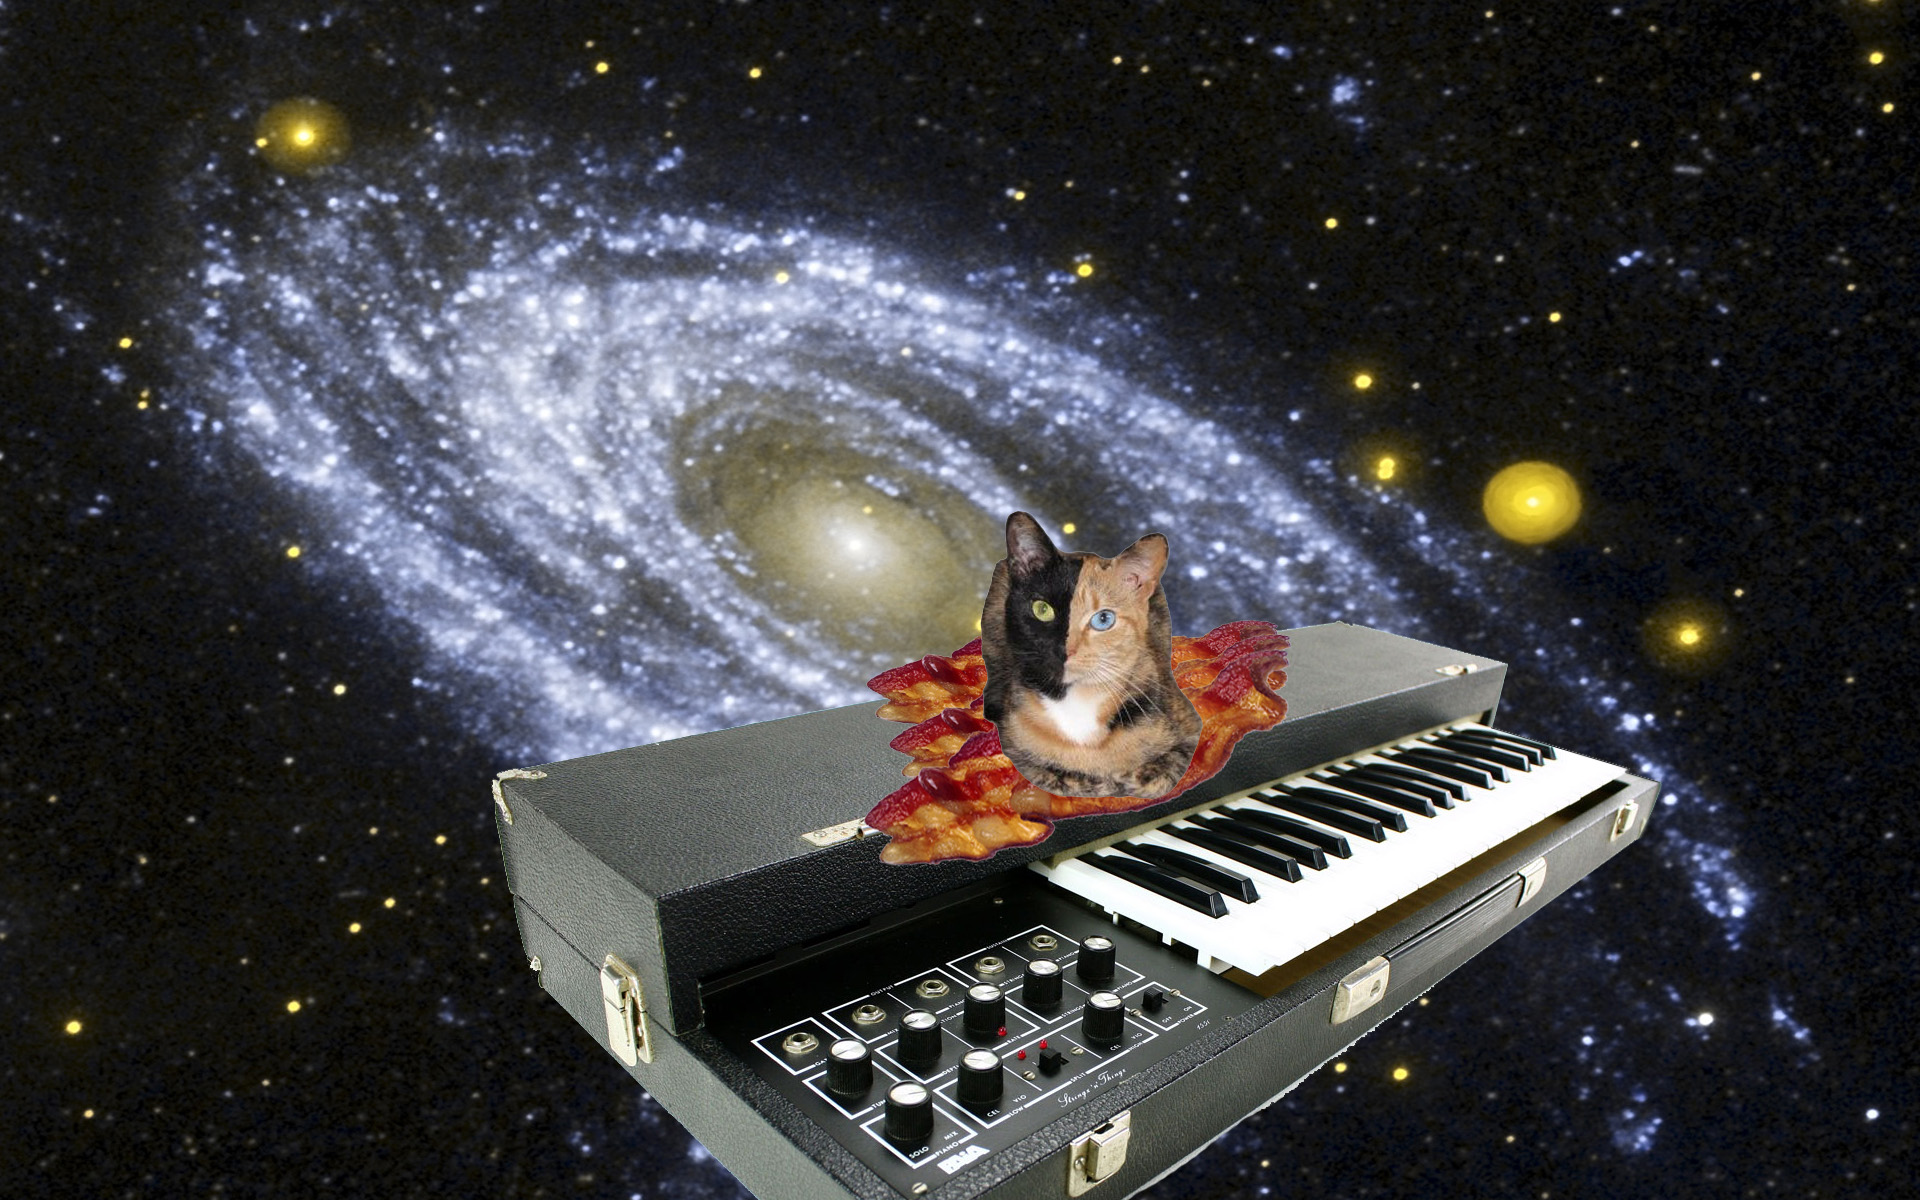 Cats in Space Wallpaper Images Pictures   Findpik 1920x1200